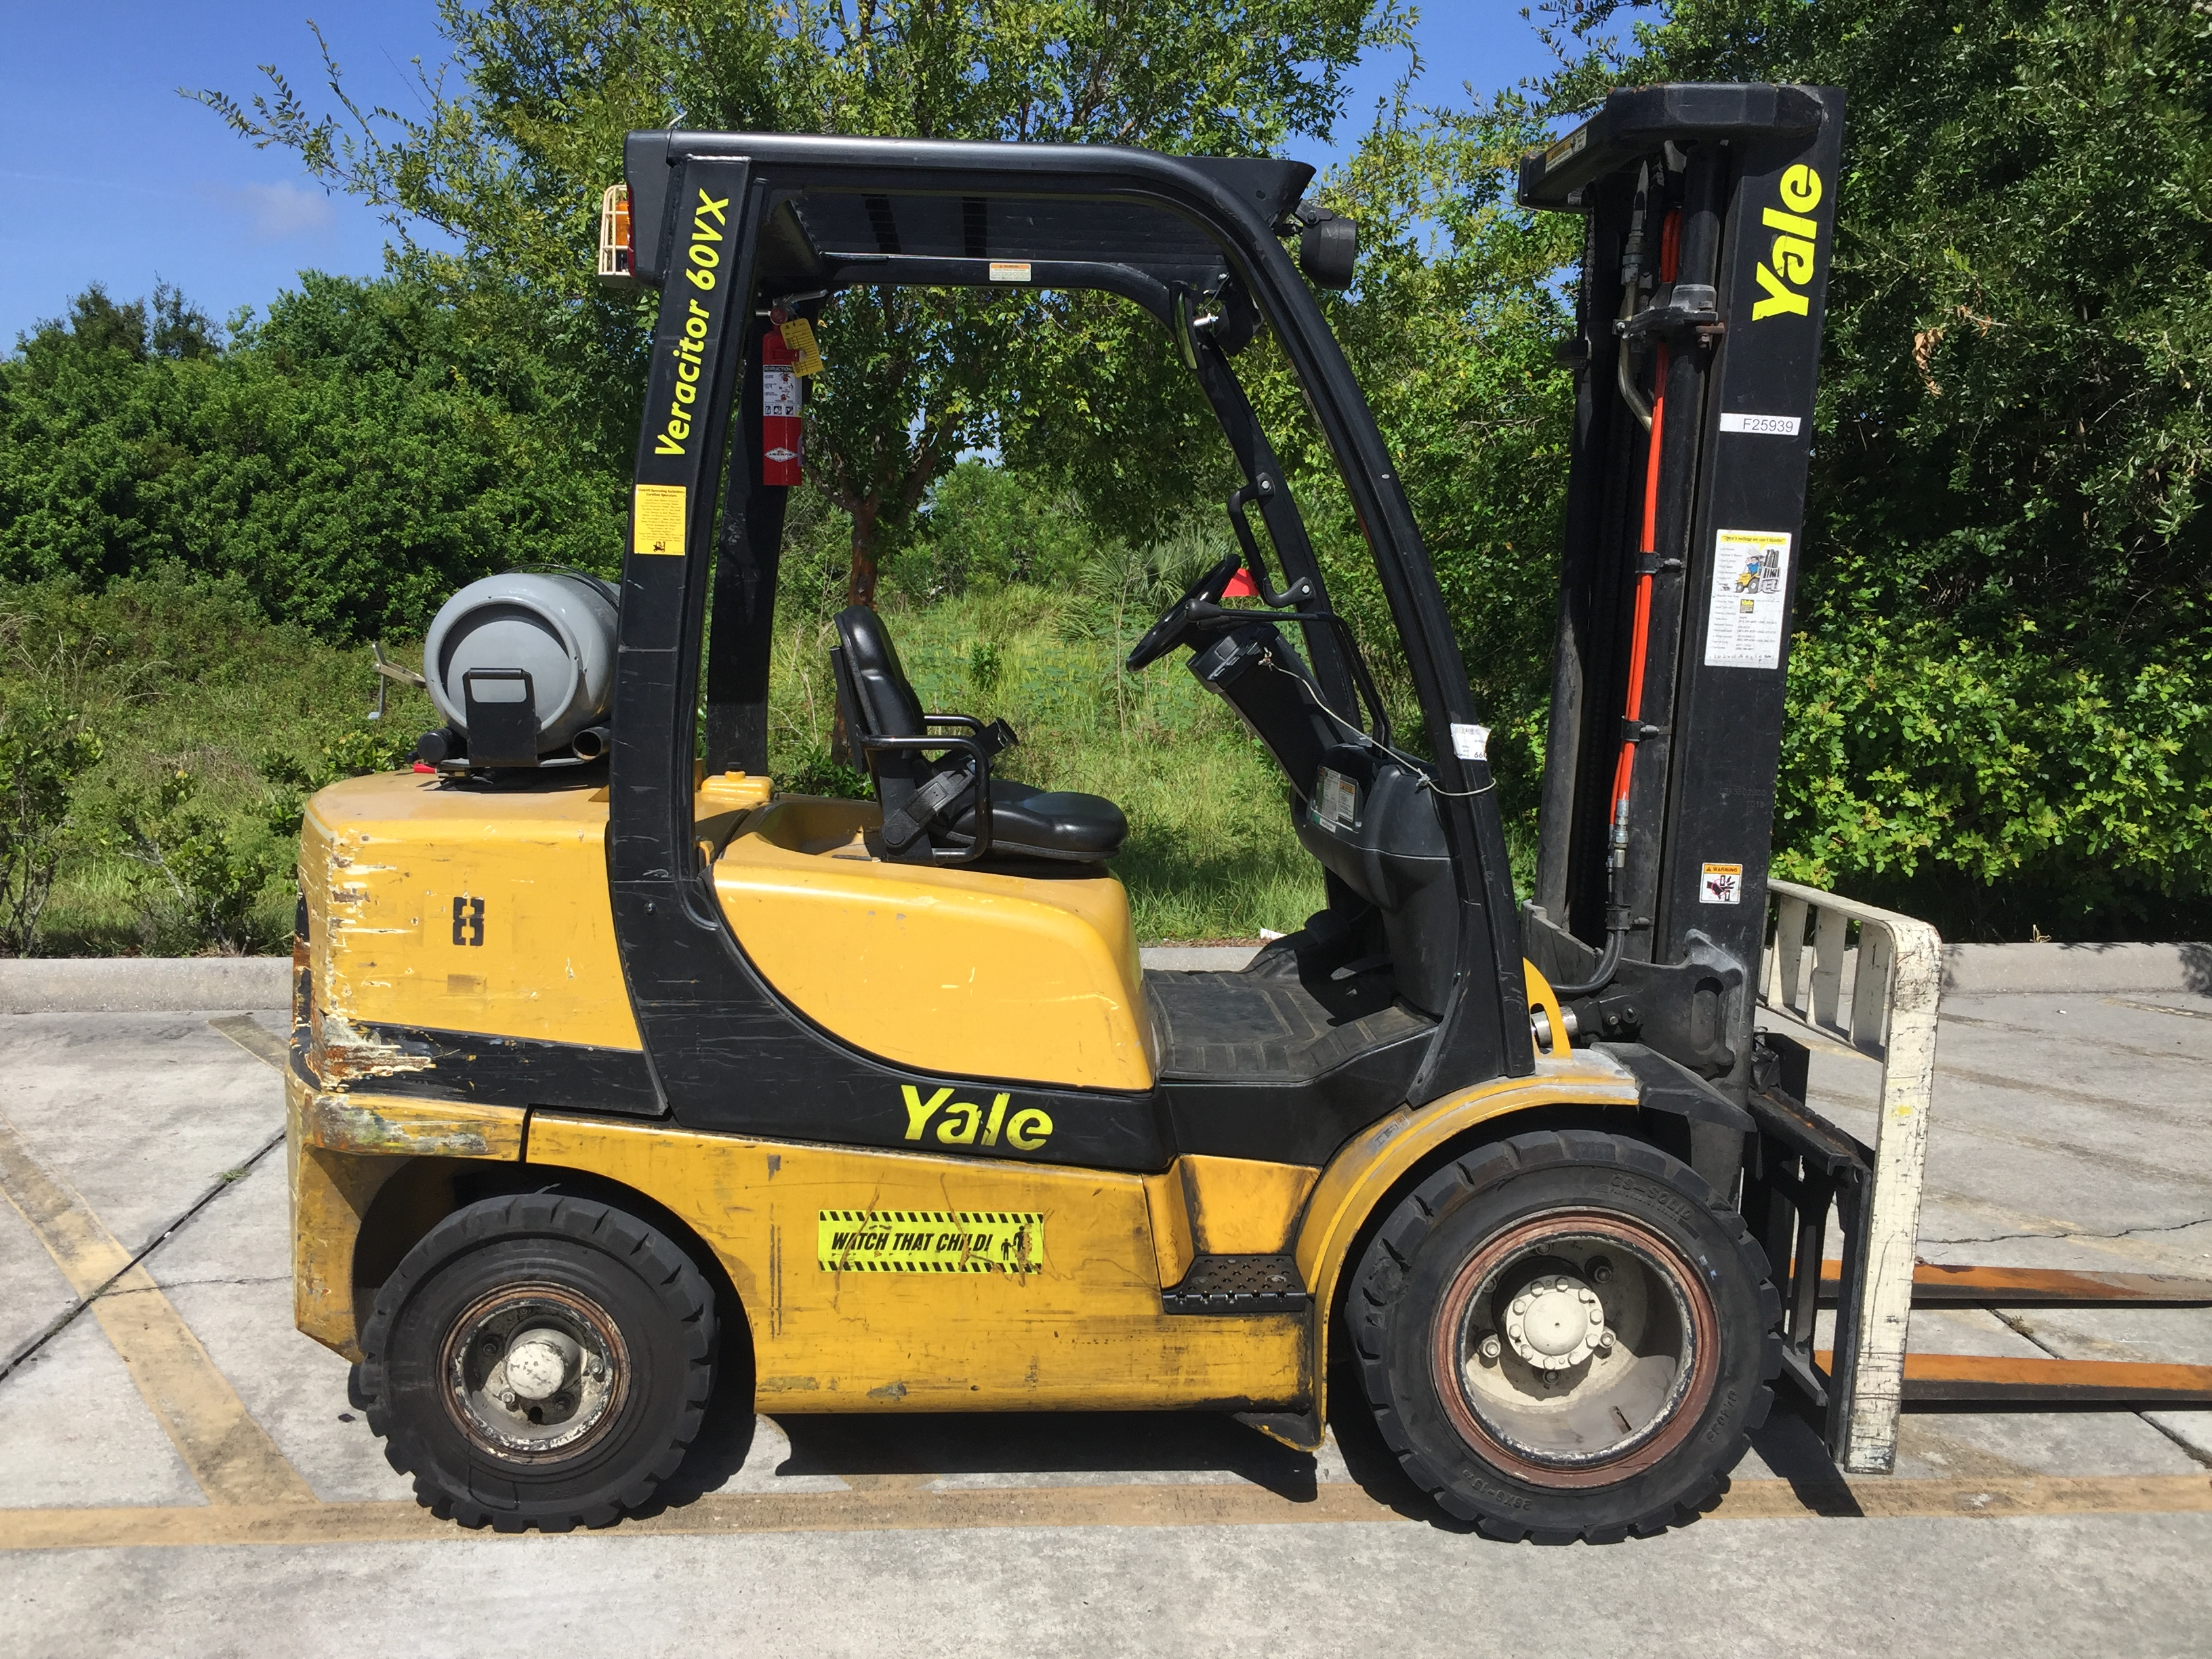 2006 YALE GLP060VXEVRE093 FORKLIFT FOR SALE